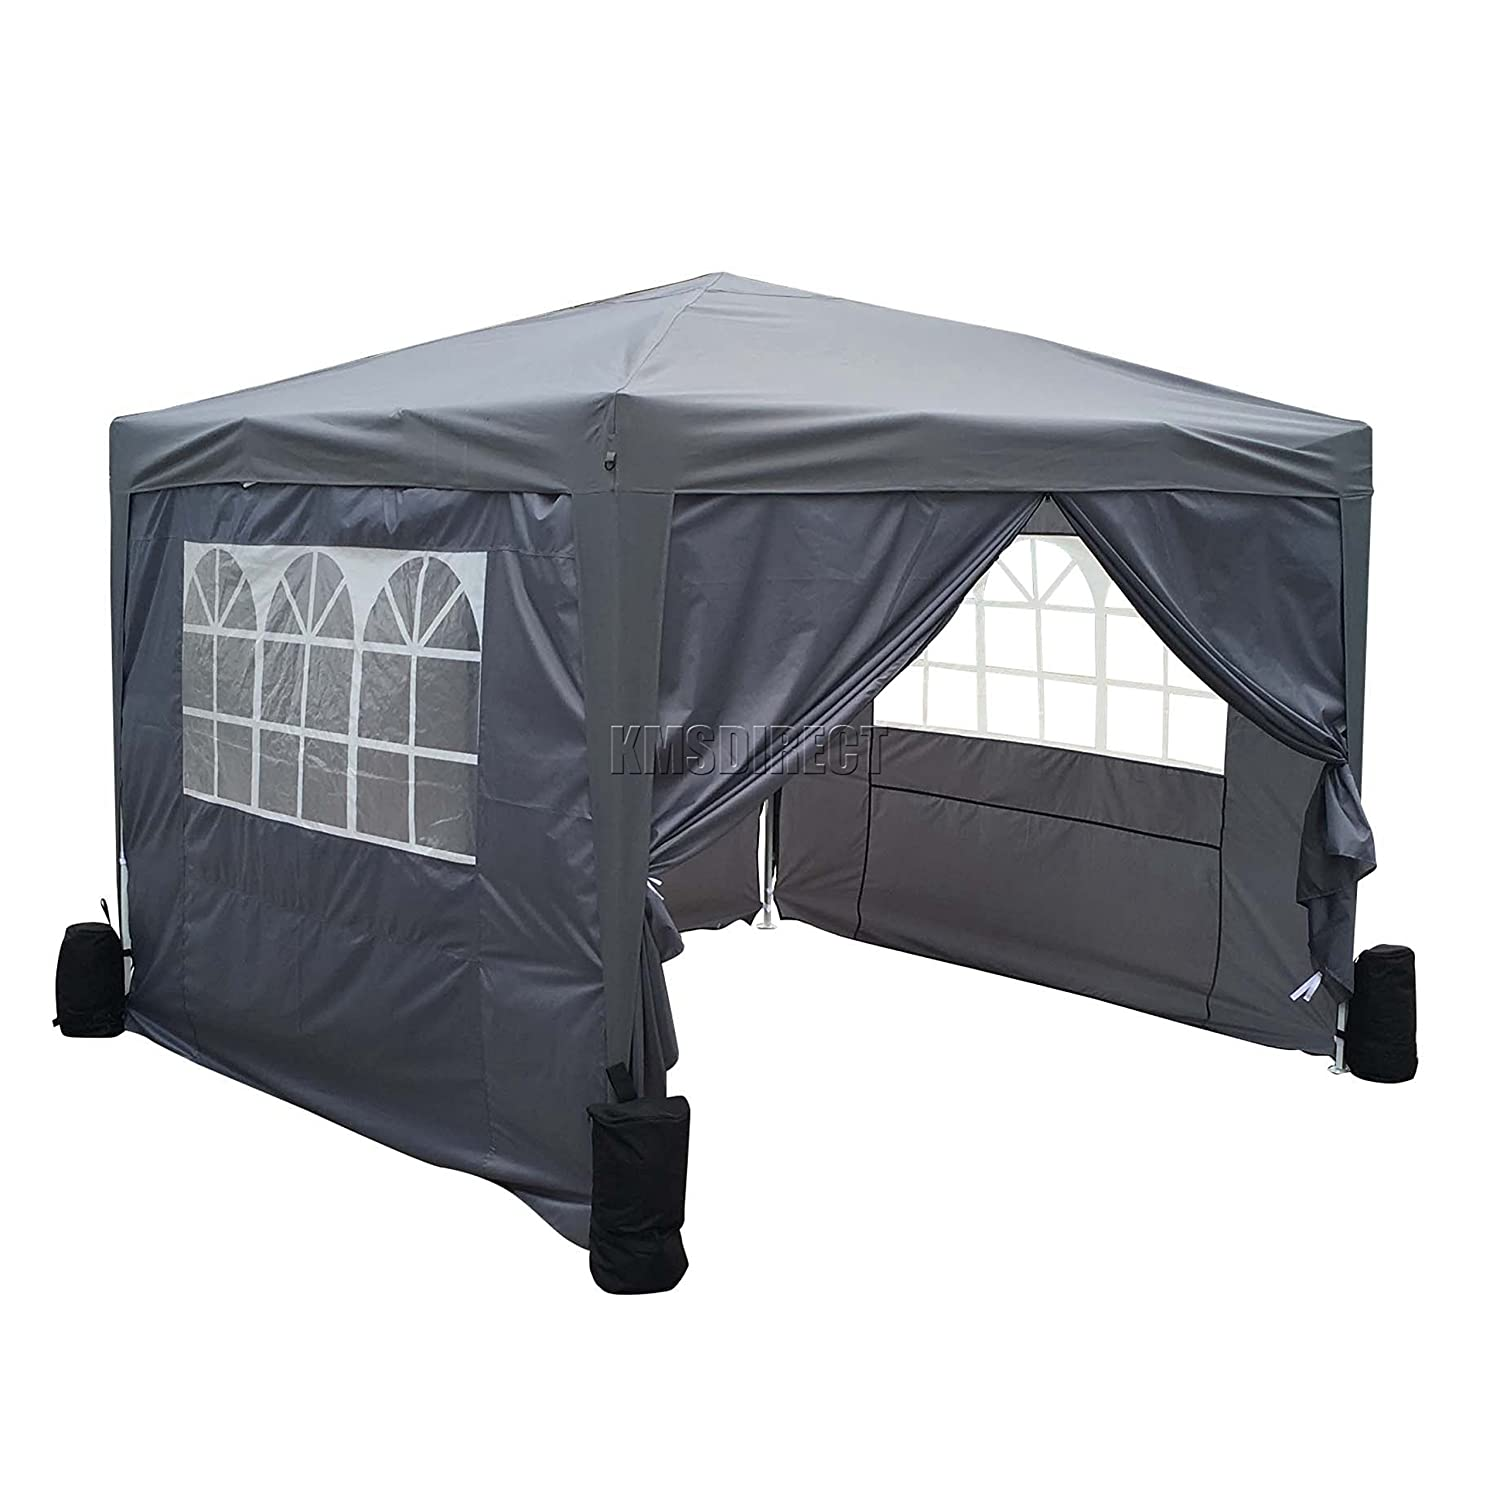 FoxHunter Waterproof 3m x 3m Pop Up Gazebo Marquee Garden Awning Party Tent Canopy 260g Polyester Powder Coated Steel Frame 4 Weight Bags Grey KMS